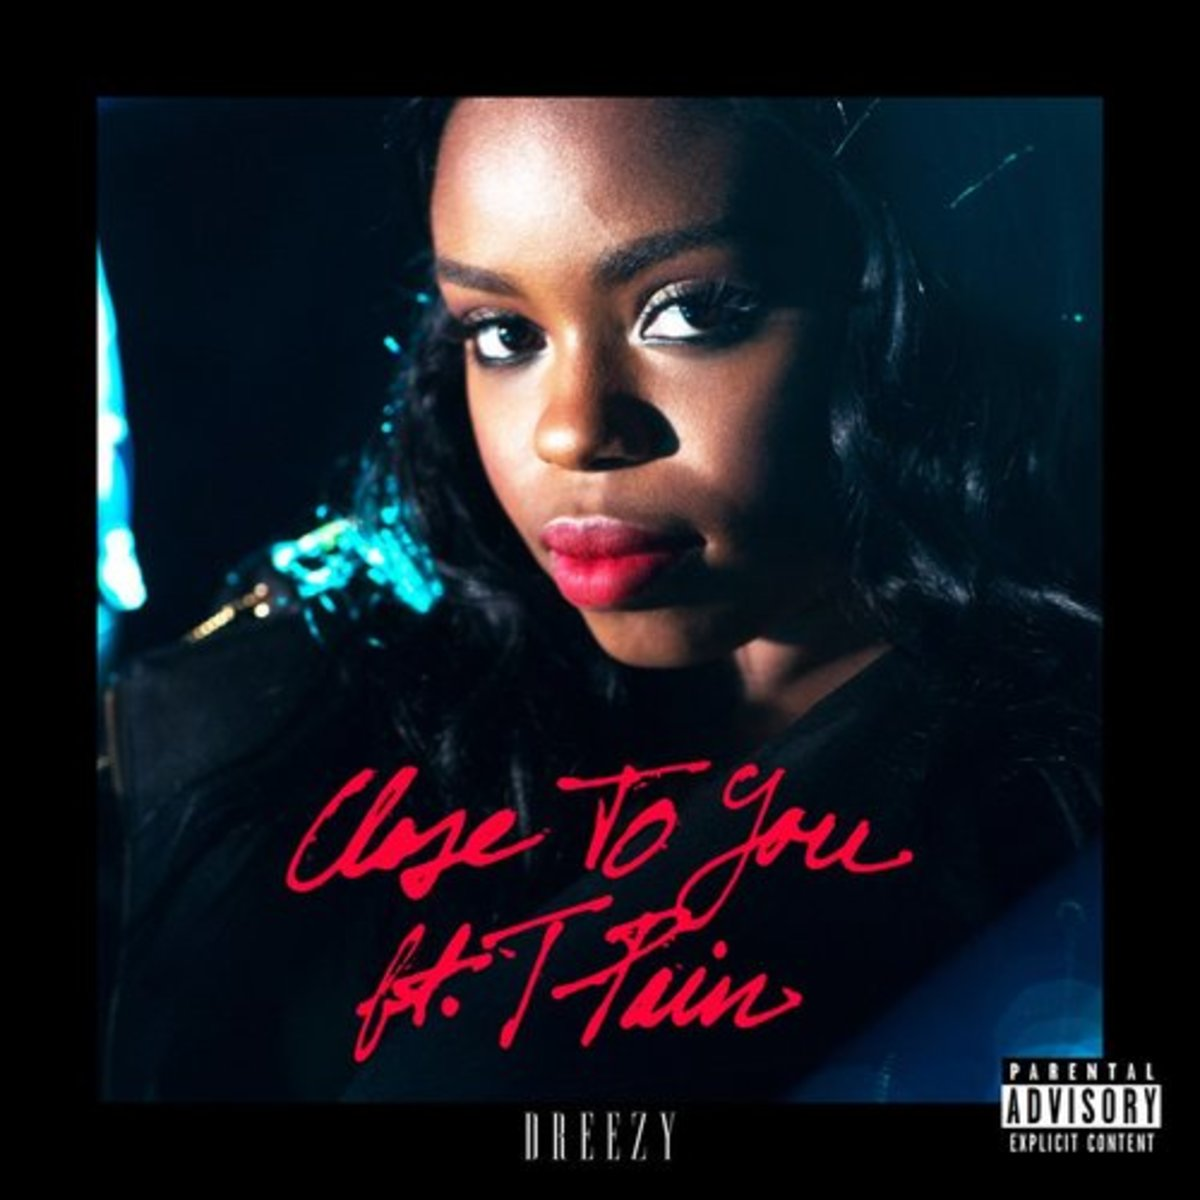 dreezy-close-to-you.jpg